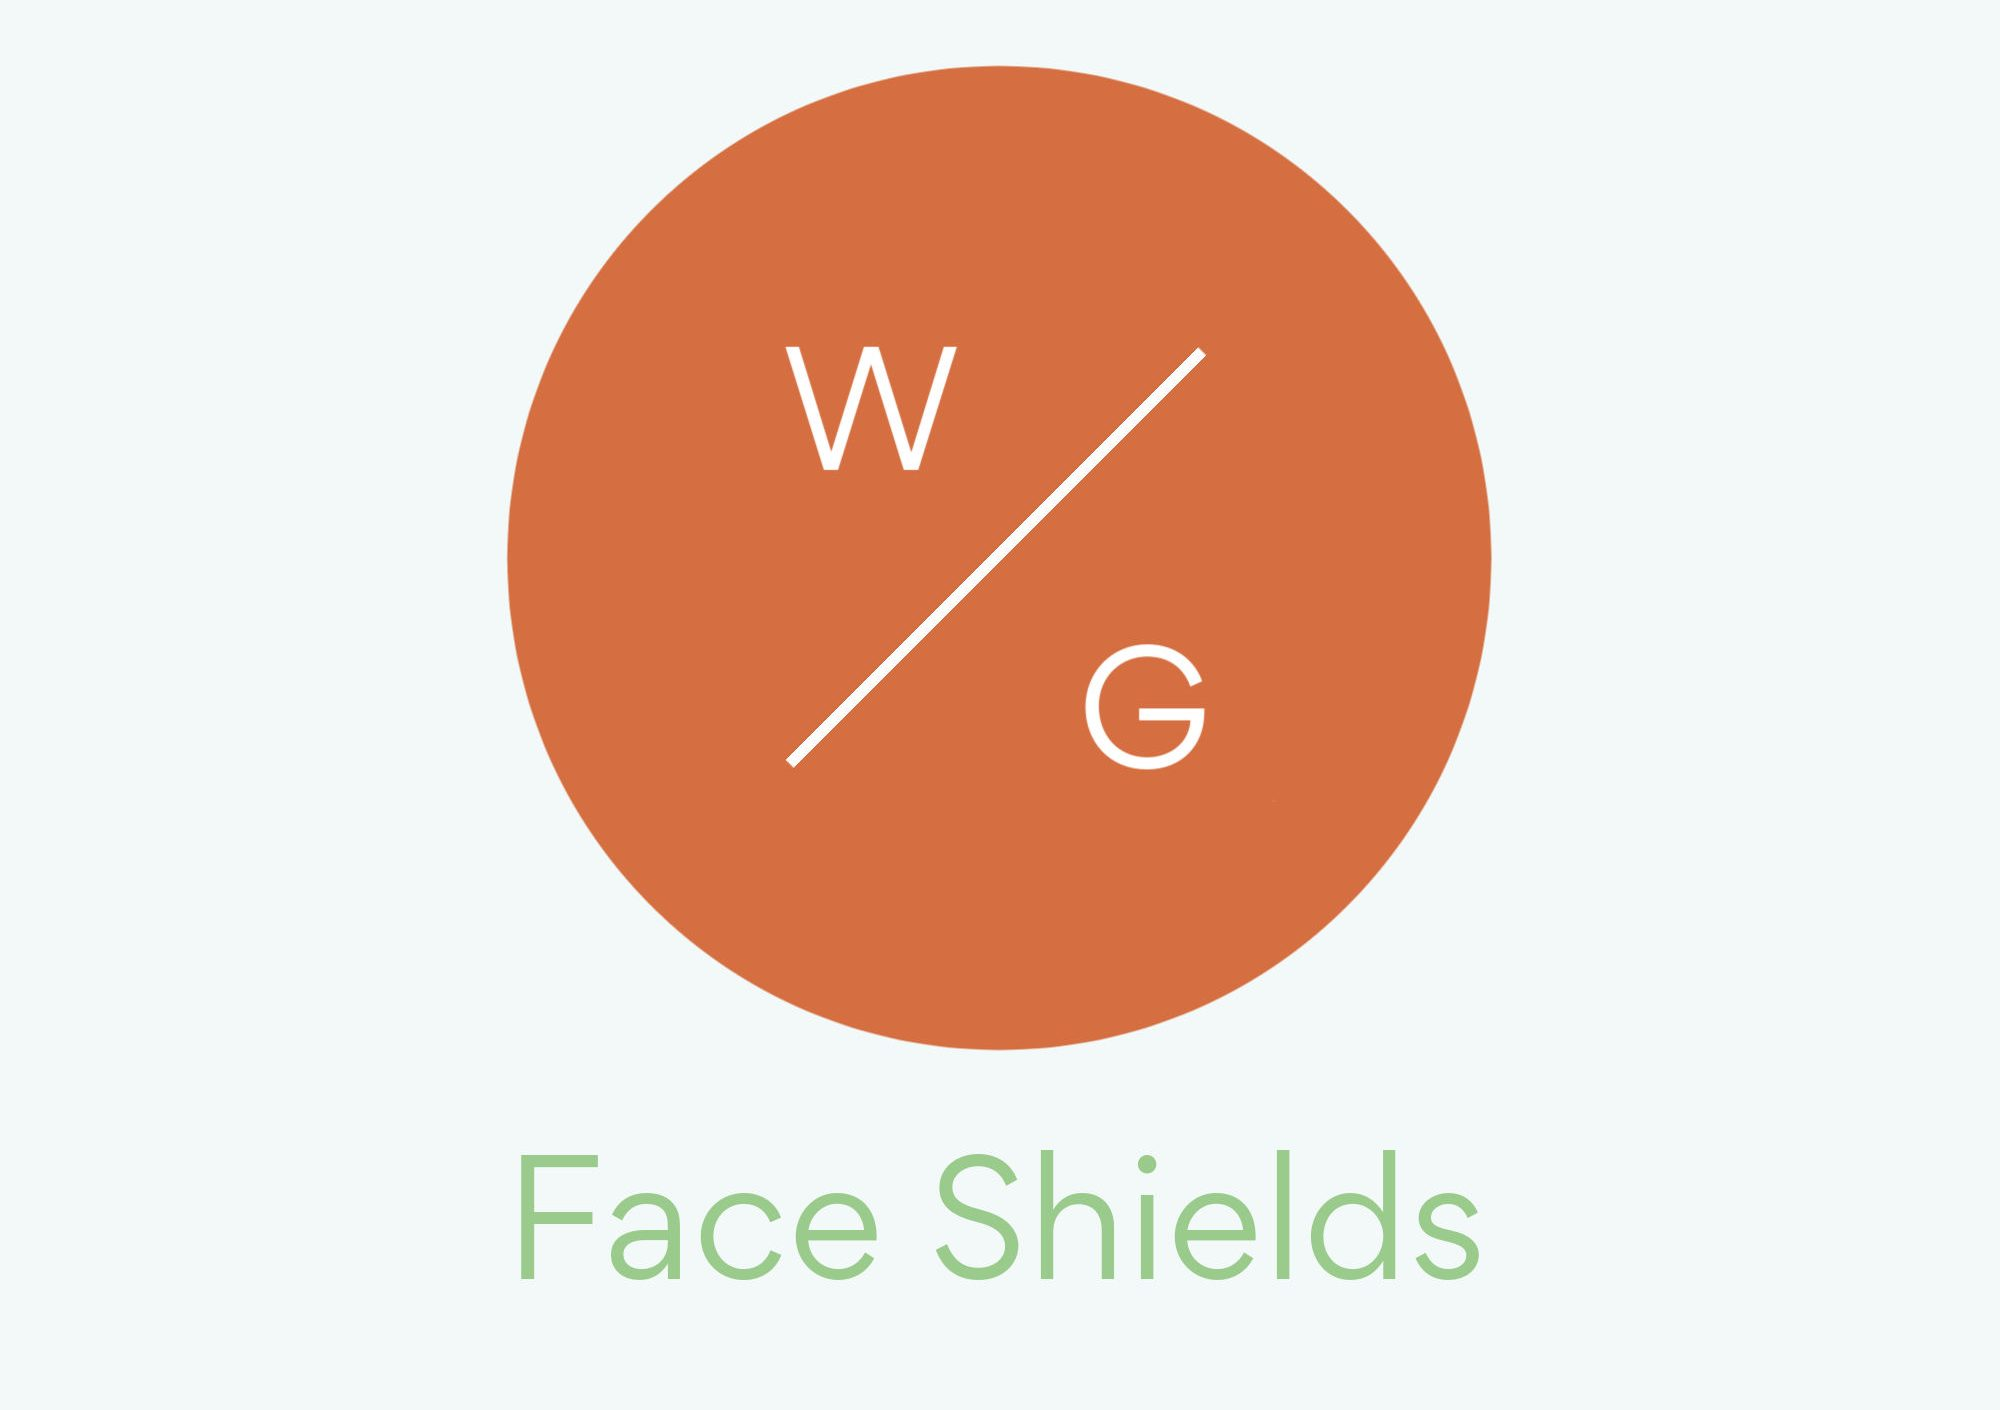 WG Face Shields